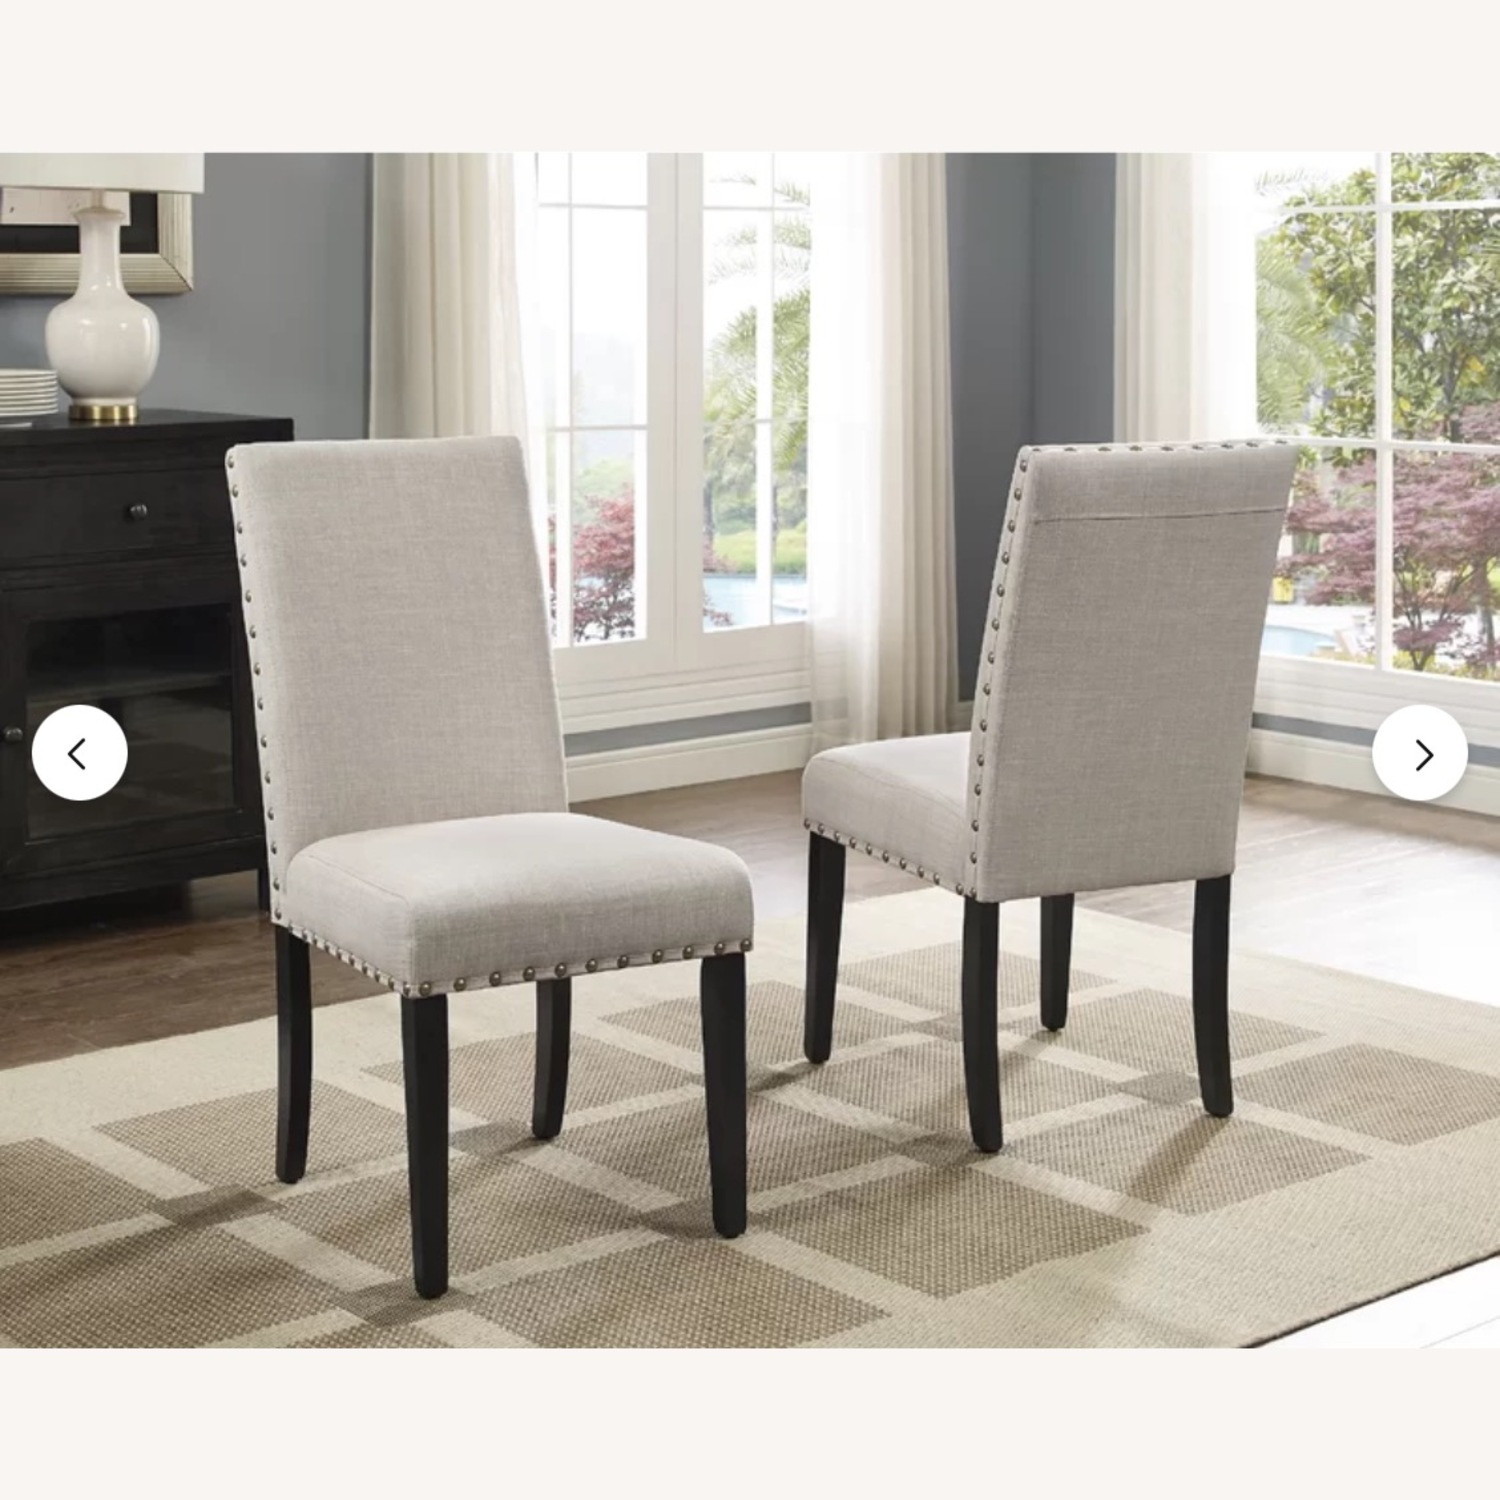 Wayfair Set of Gracie Oaks Upholstered Dining Chairs - image-5